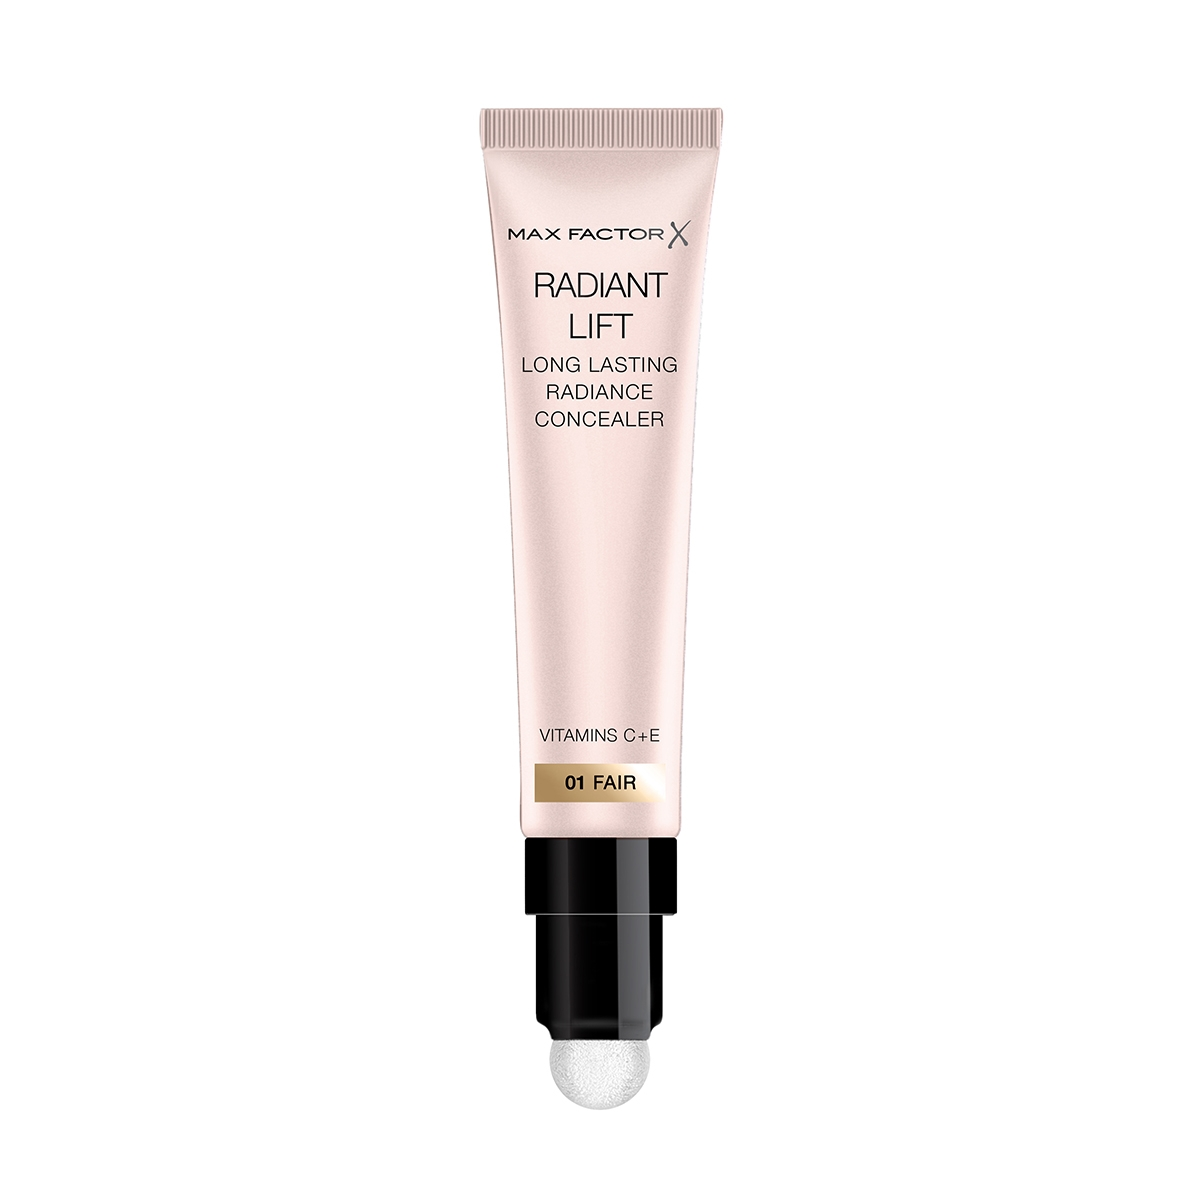 RADIANT LIFT CONCEALER 01 Fair image01